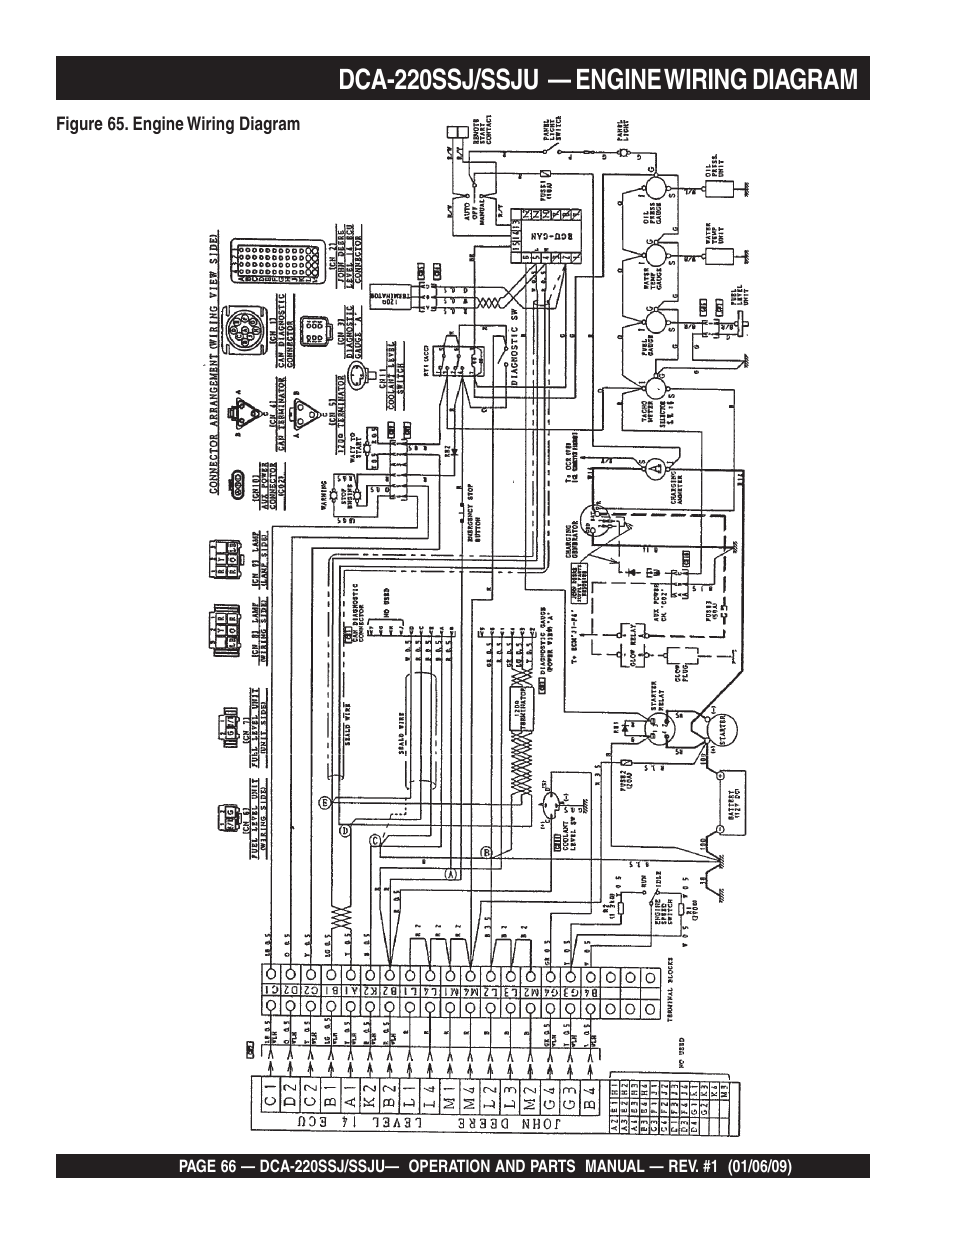 Kohler Marine Generator Parts Diagram 5e